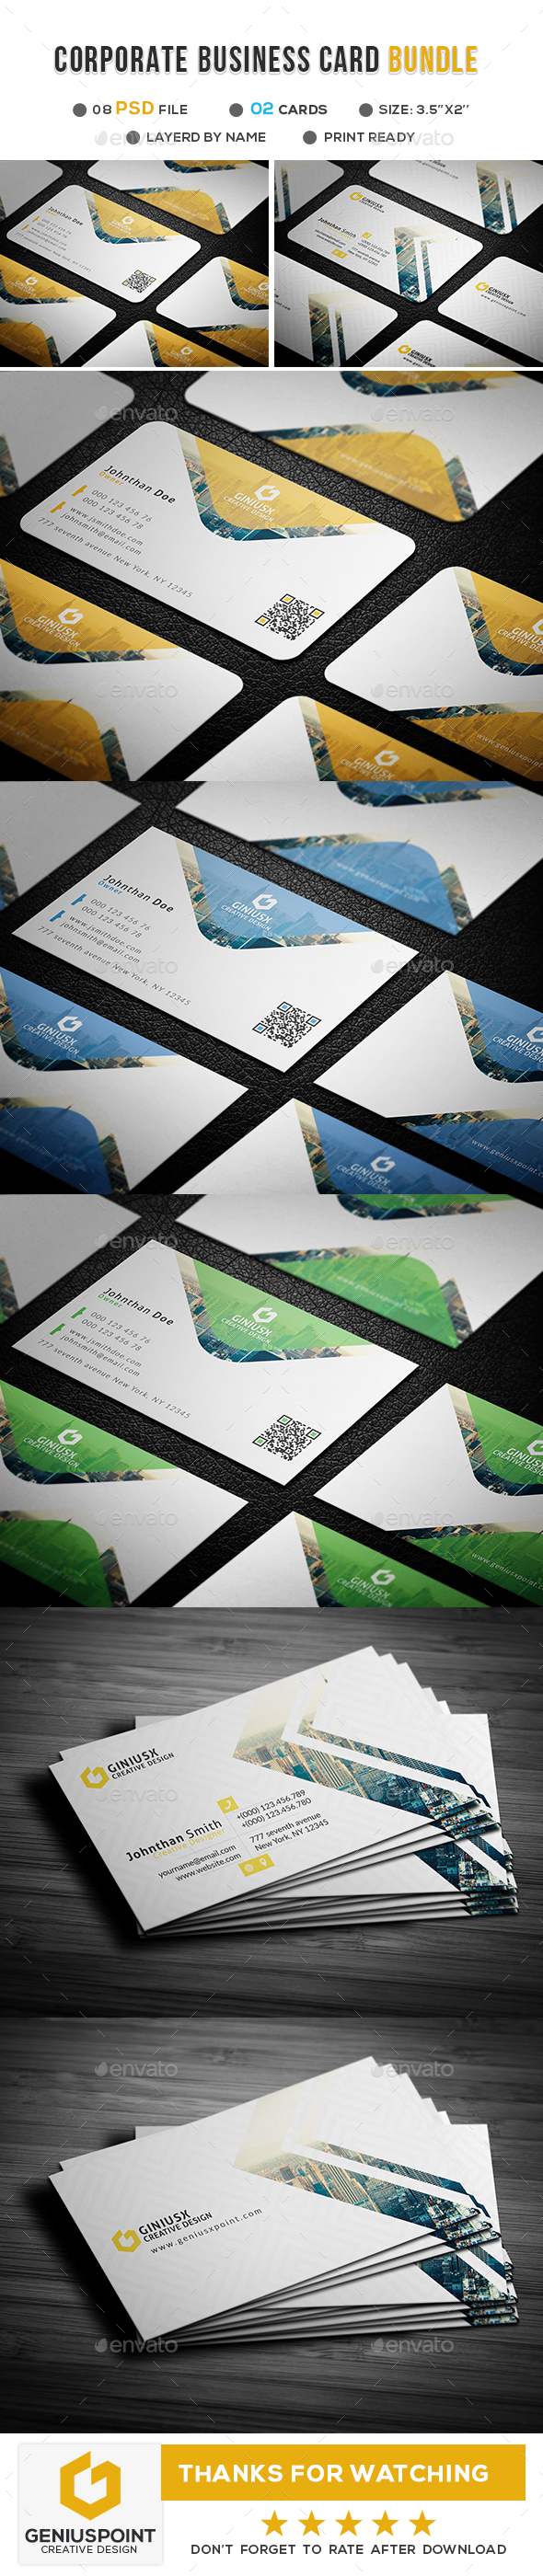 GraphicRiver Corporate Business Card Bundle 20941452